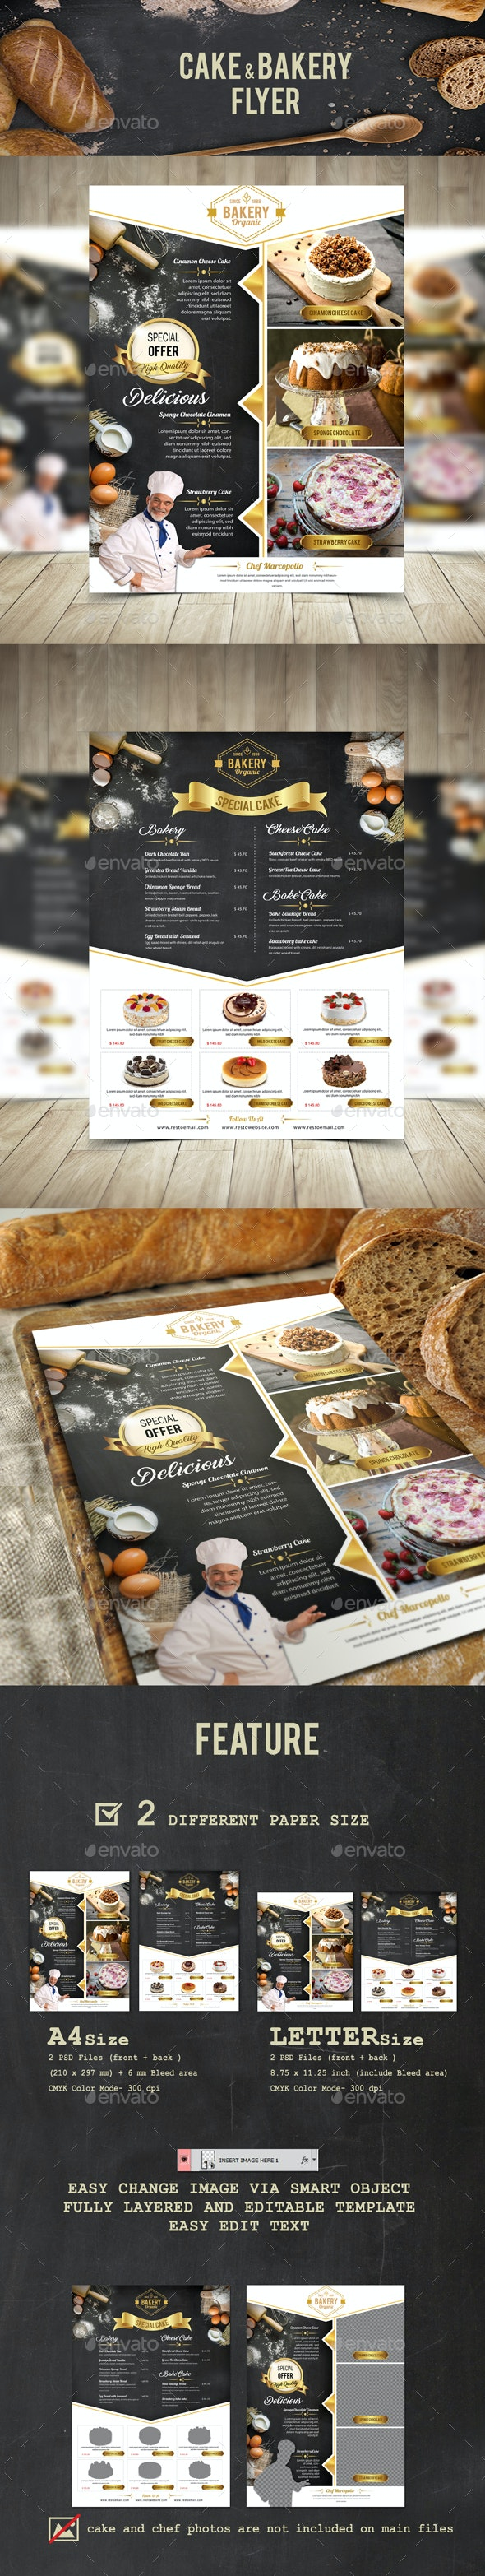 Cake and Bakery Flyer - Flyers Print Templates